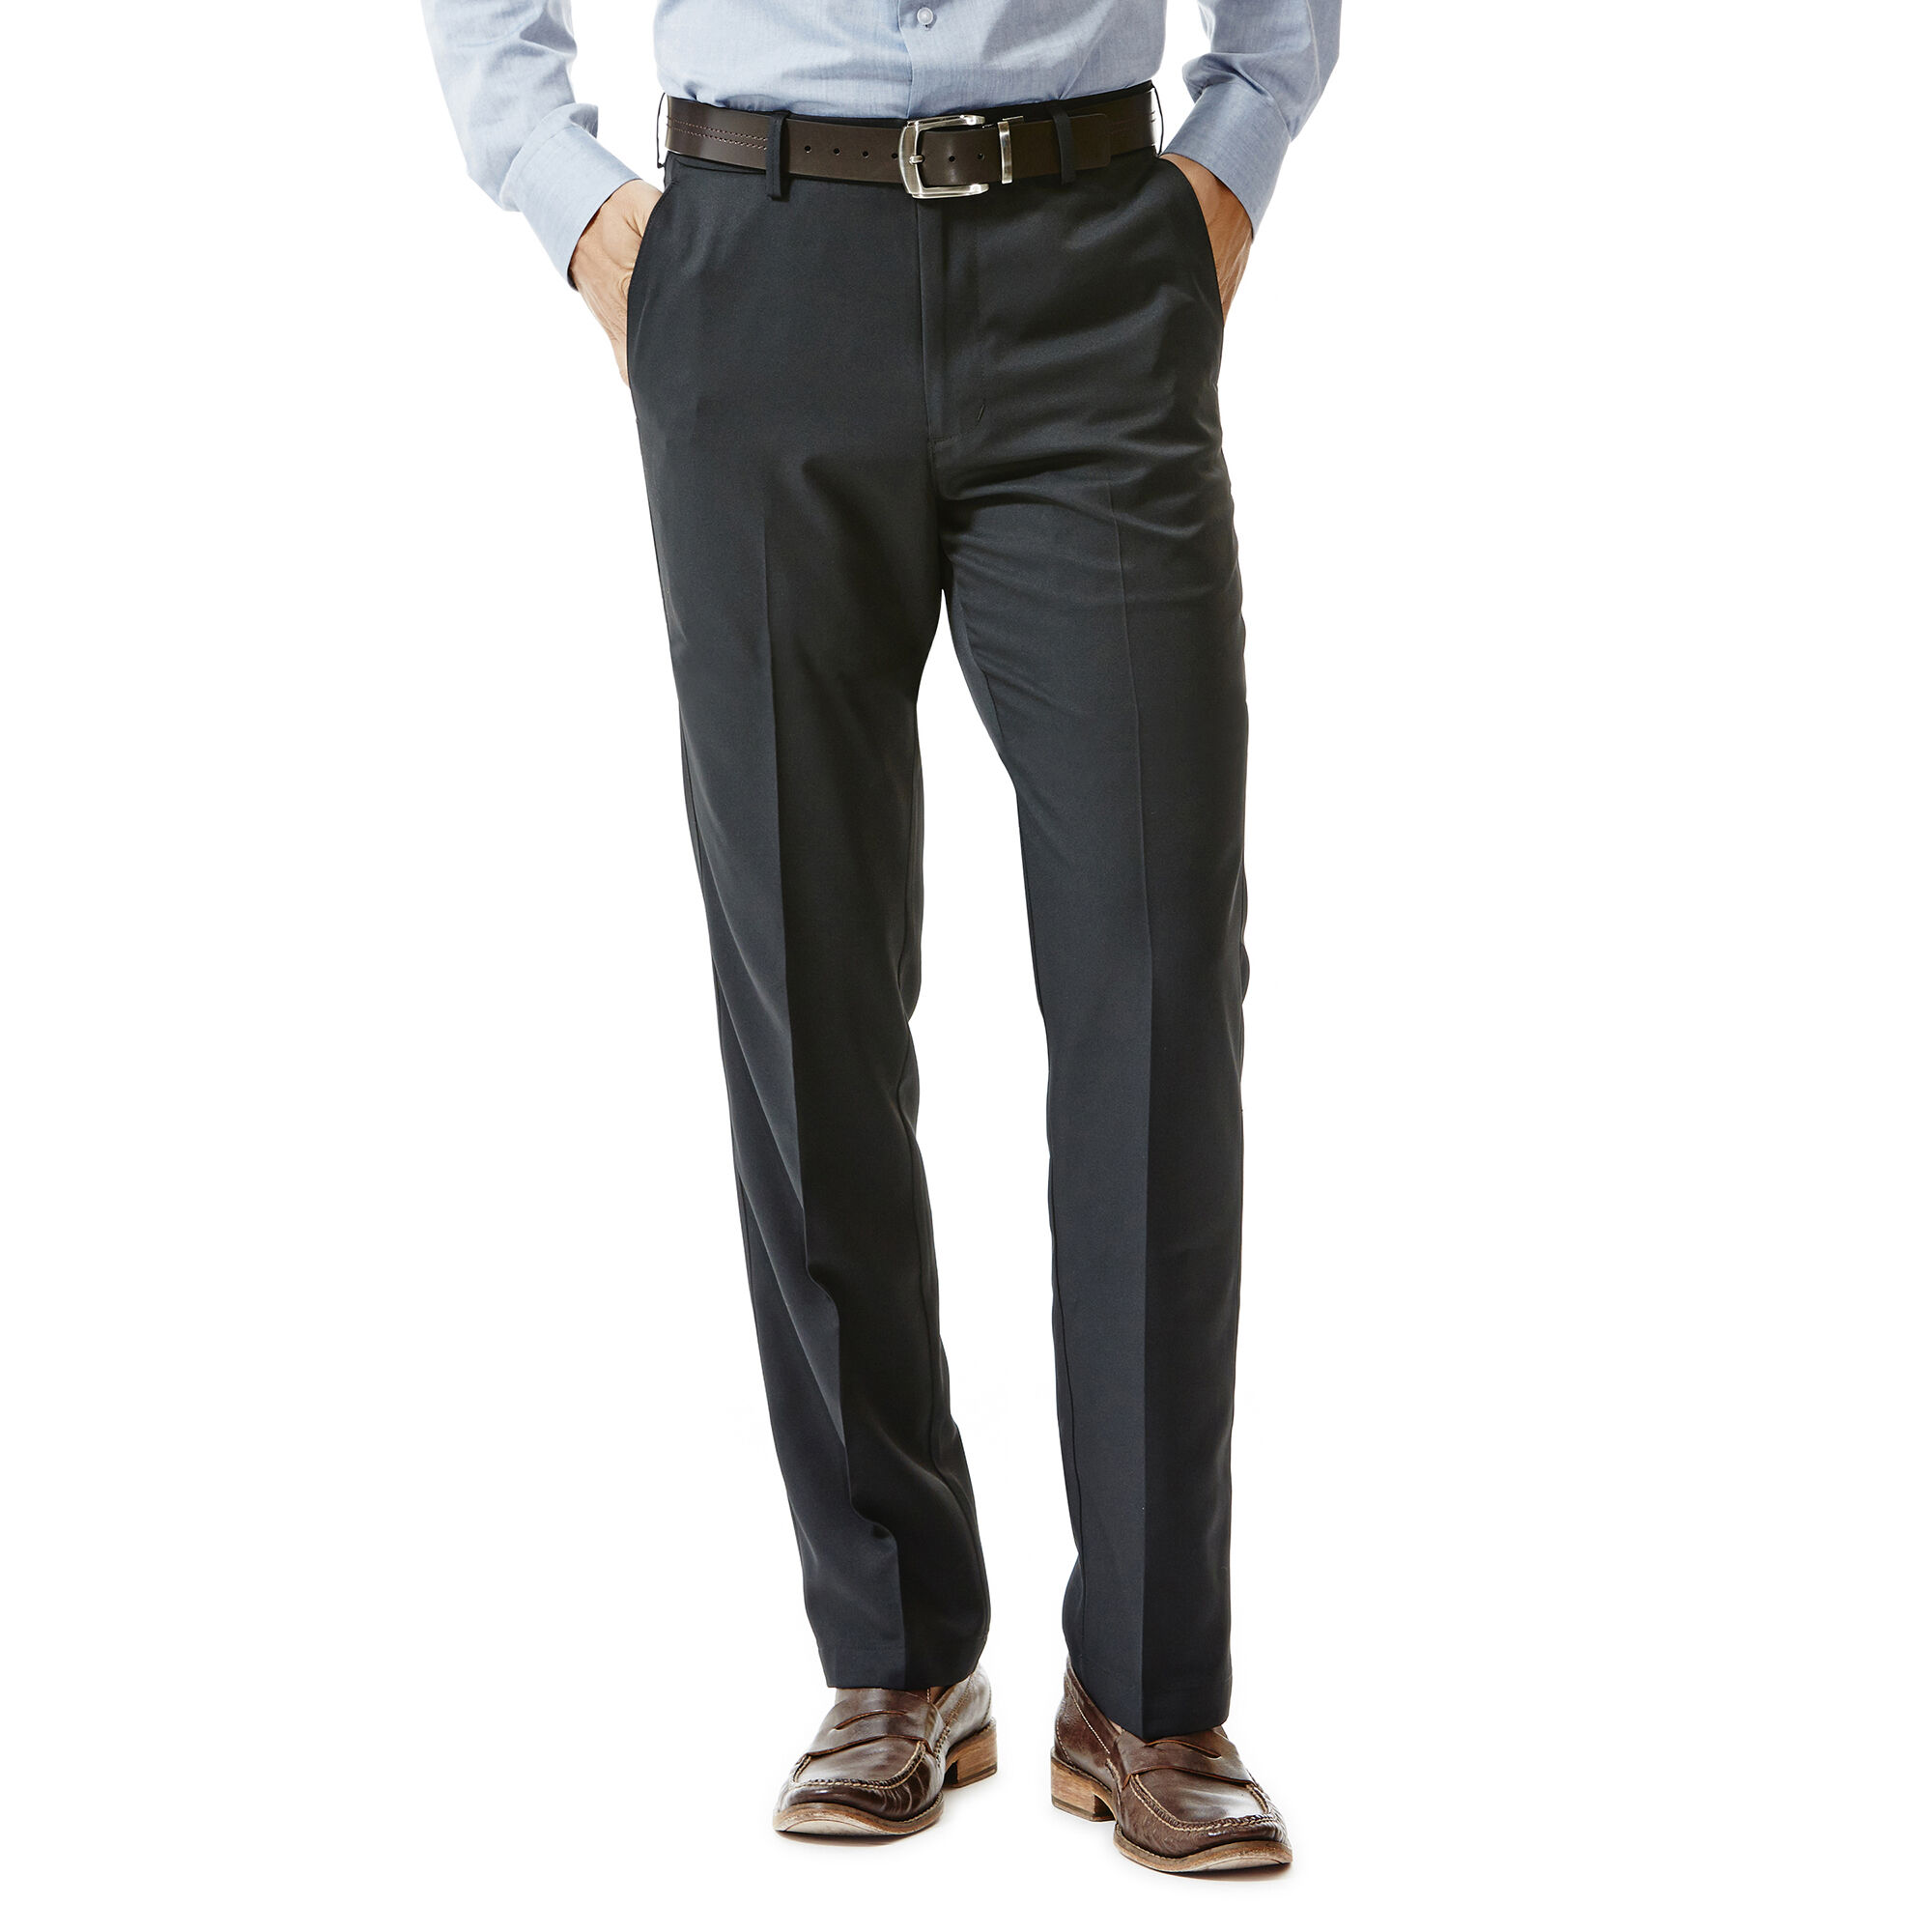 Haggar Mens Performance Cotton Slack Straight Fit Plain Front Pant